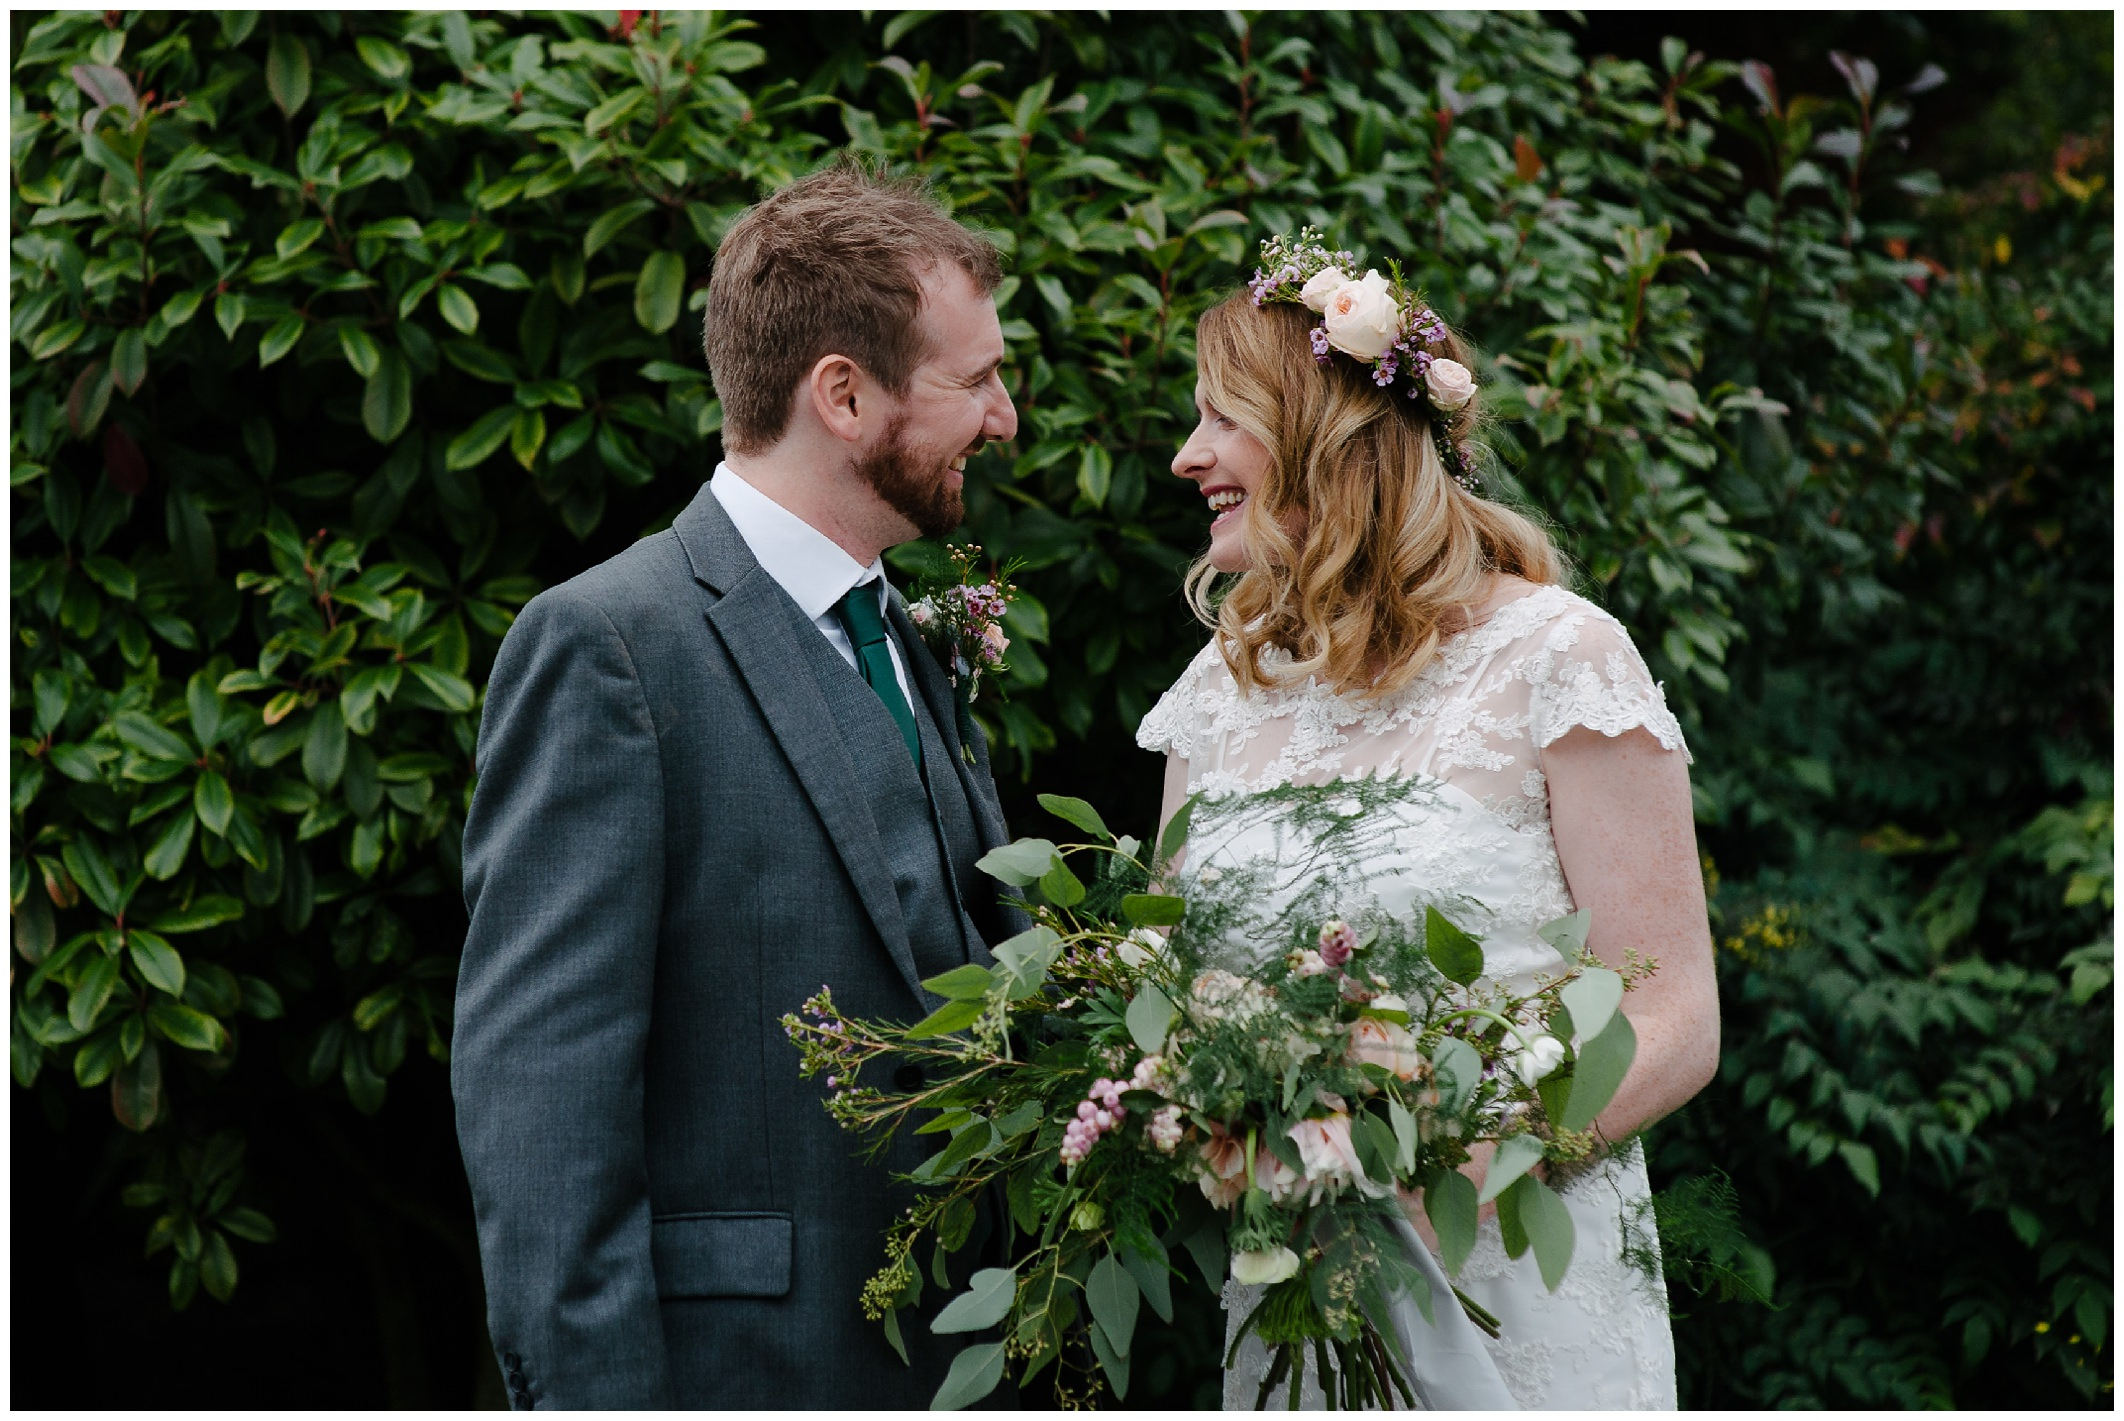 asylum_chapel_peckham_rosendale_wedding_jude_browne_photography_0103.jpg